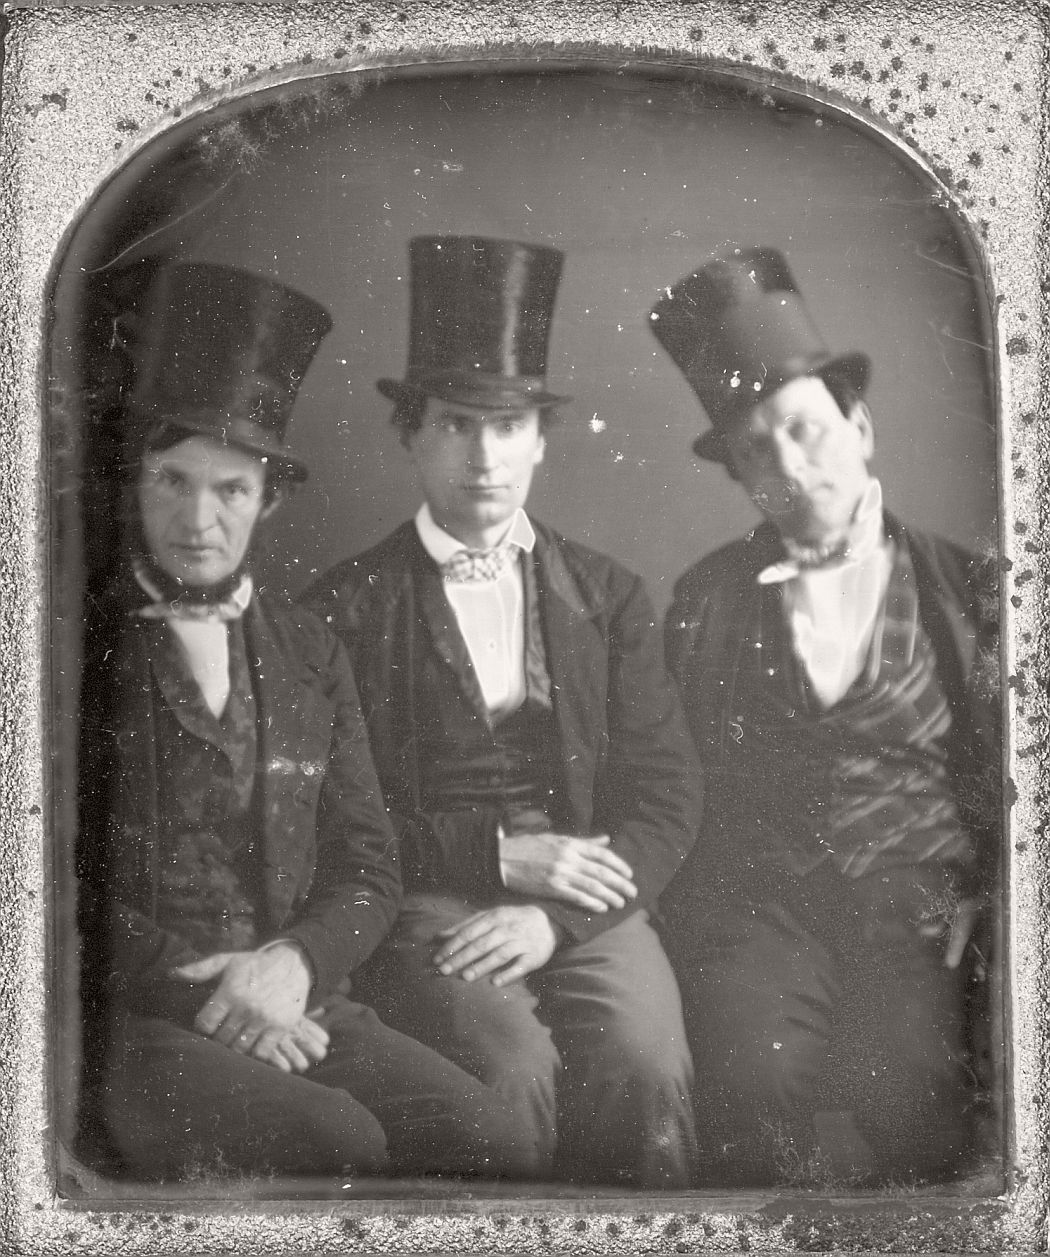 victorian-era-daguerreotype-of-men-in-hat-1850s-xix-century-22